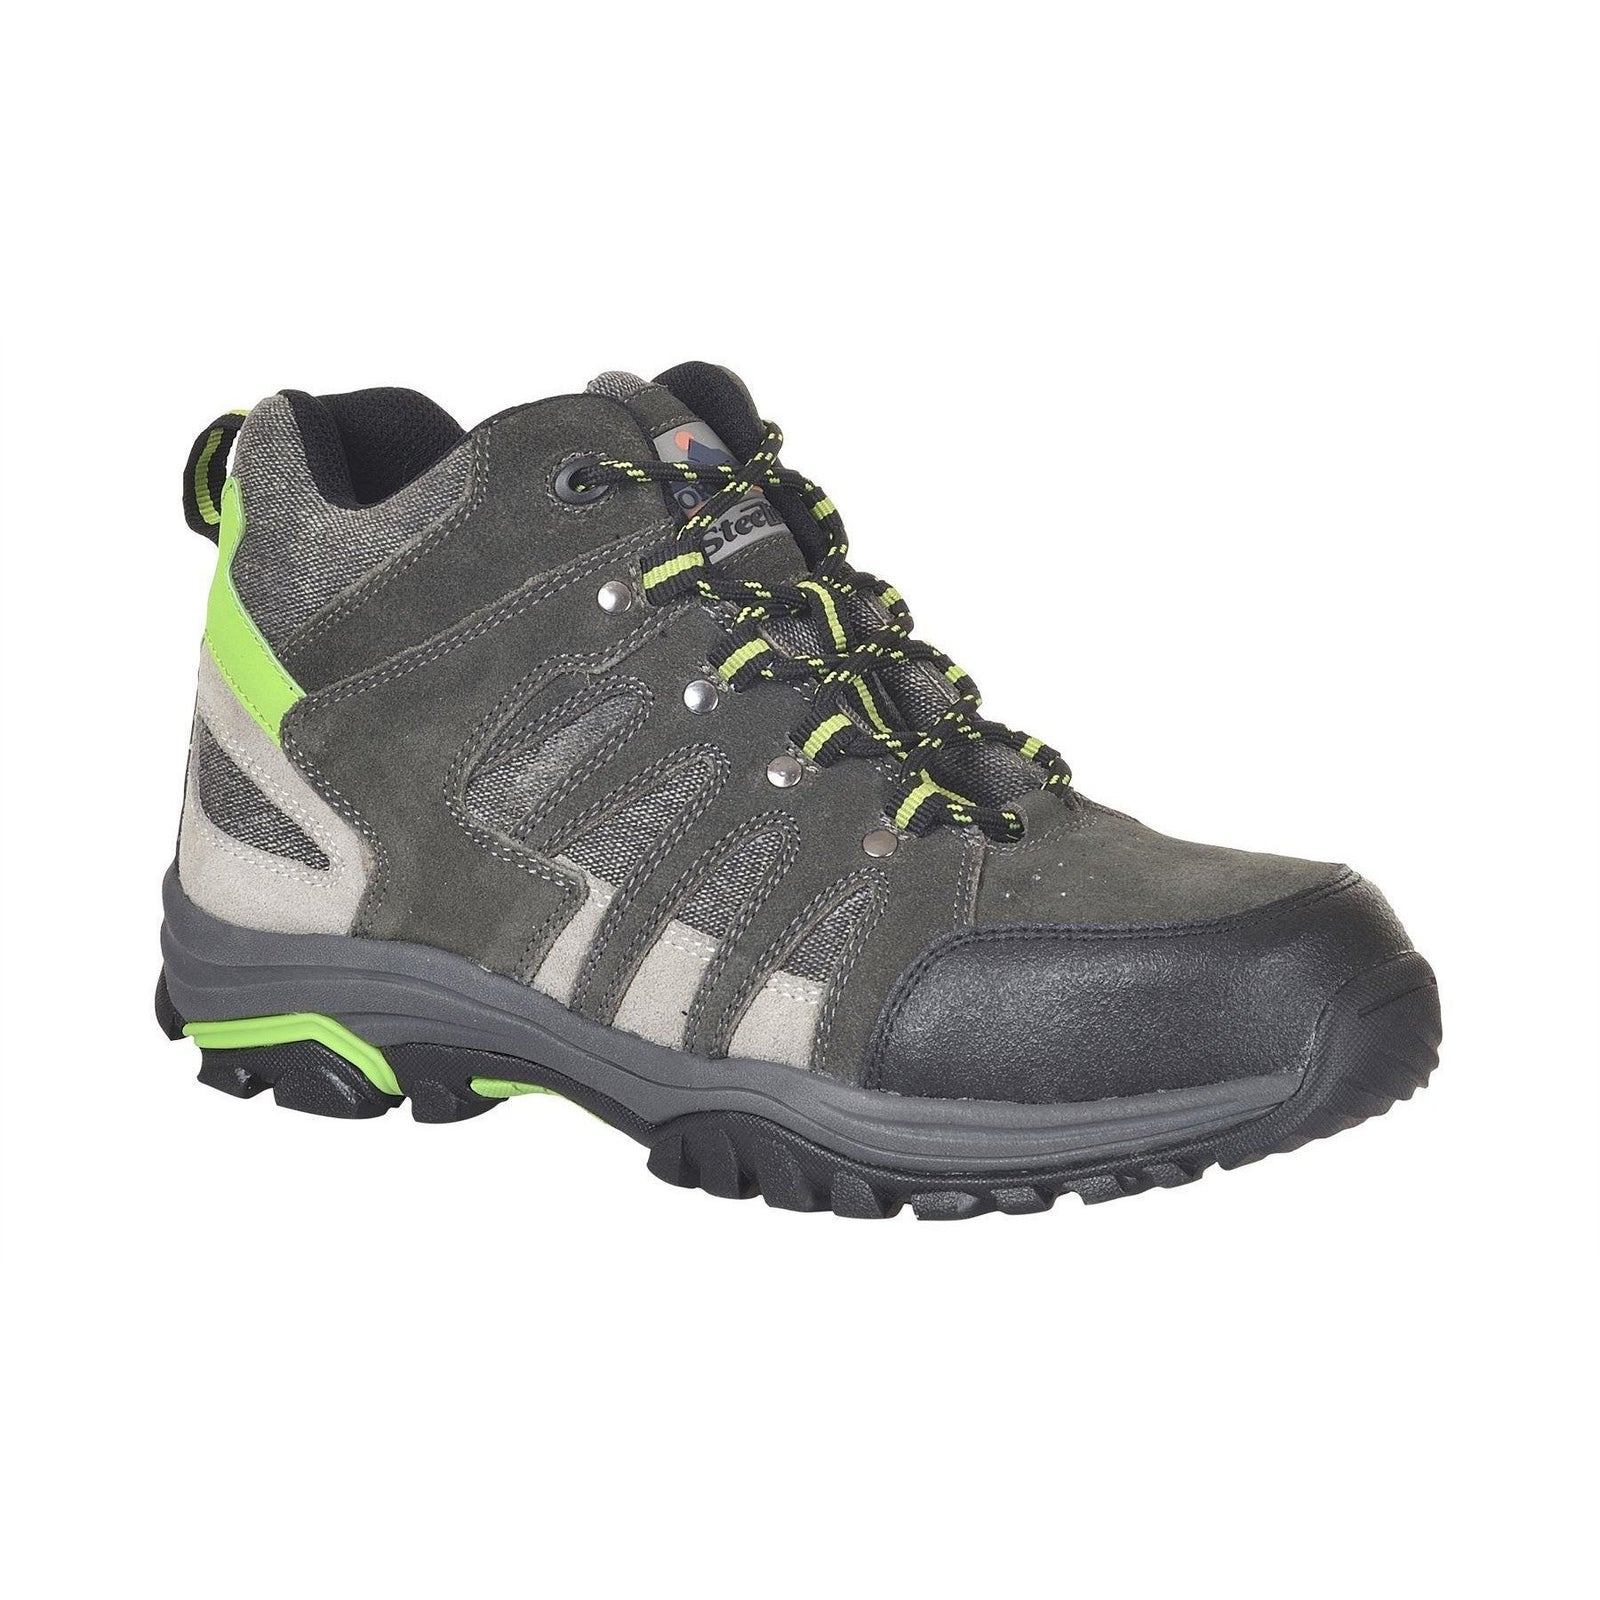 Portwest Steelite Loire Mid Cut Trainer S1P HRO FW37 - reid outdoors